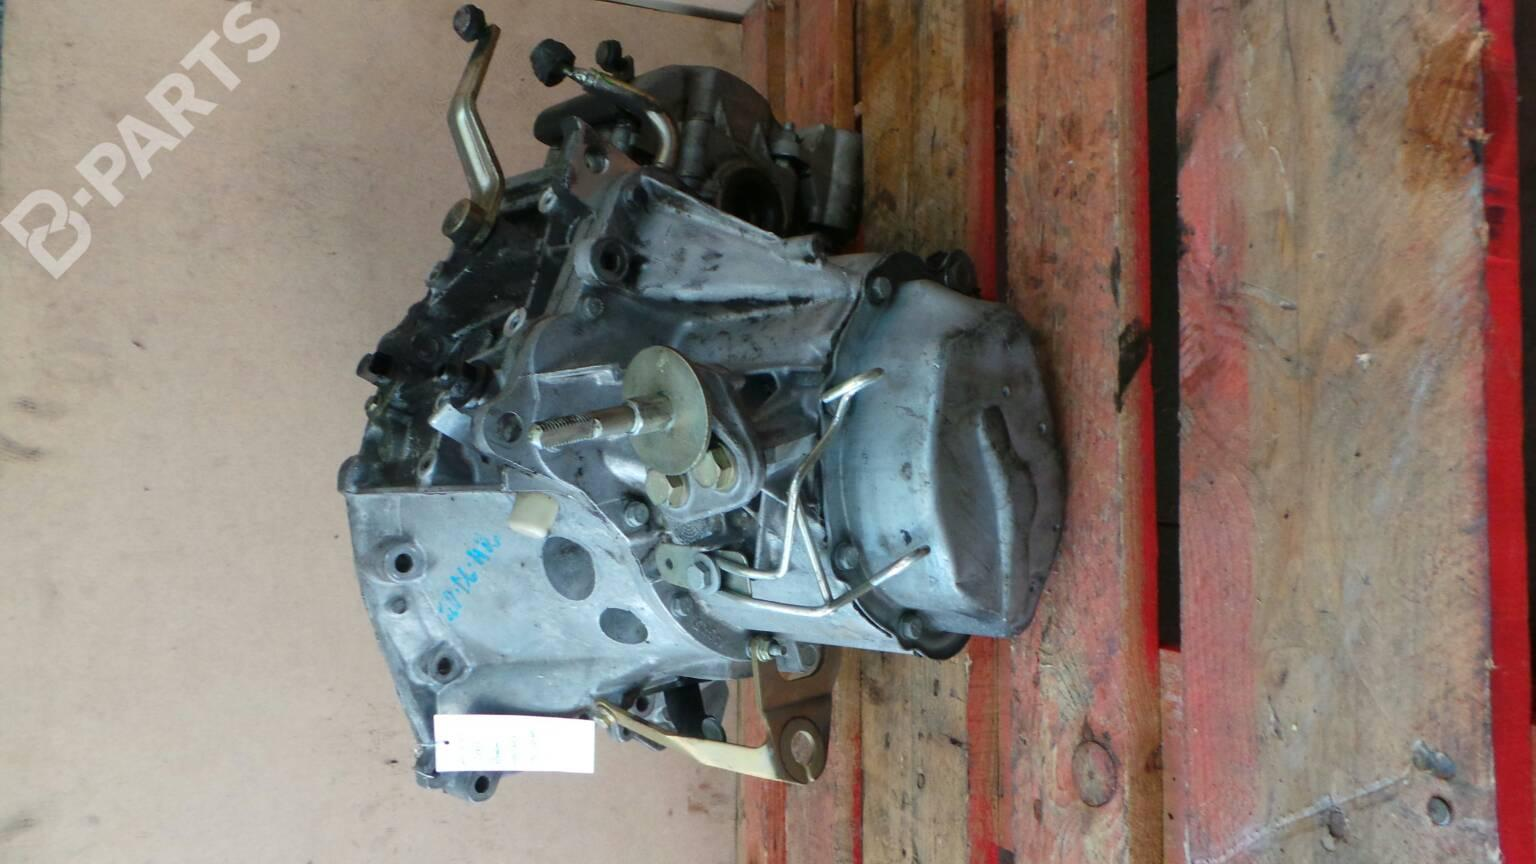 Manual Gearbox PEUGEOT 307 SW (3H) 2.0 HDI 110 27516